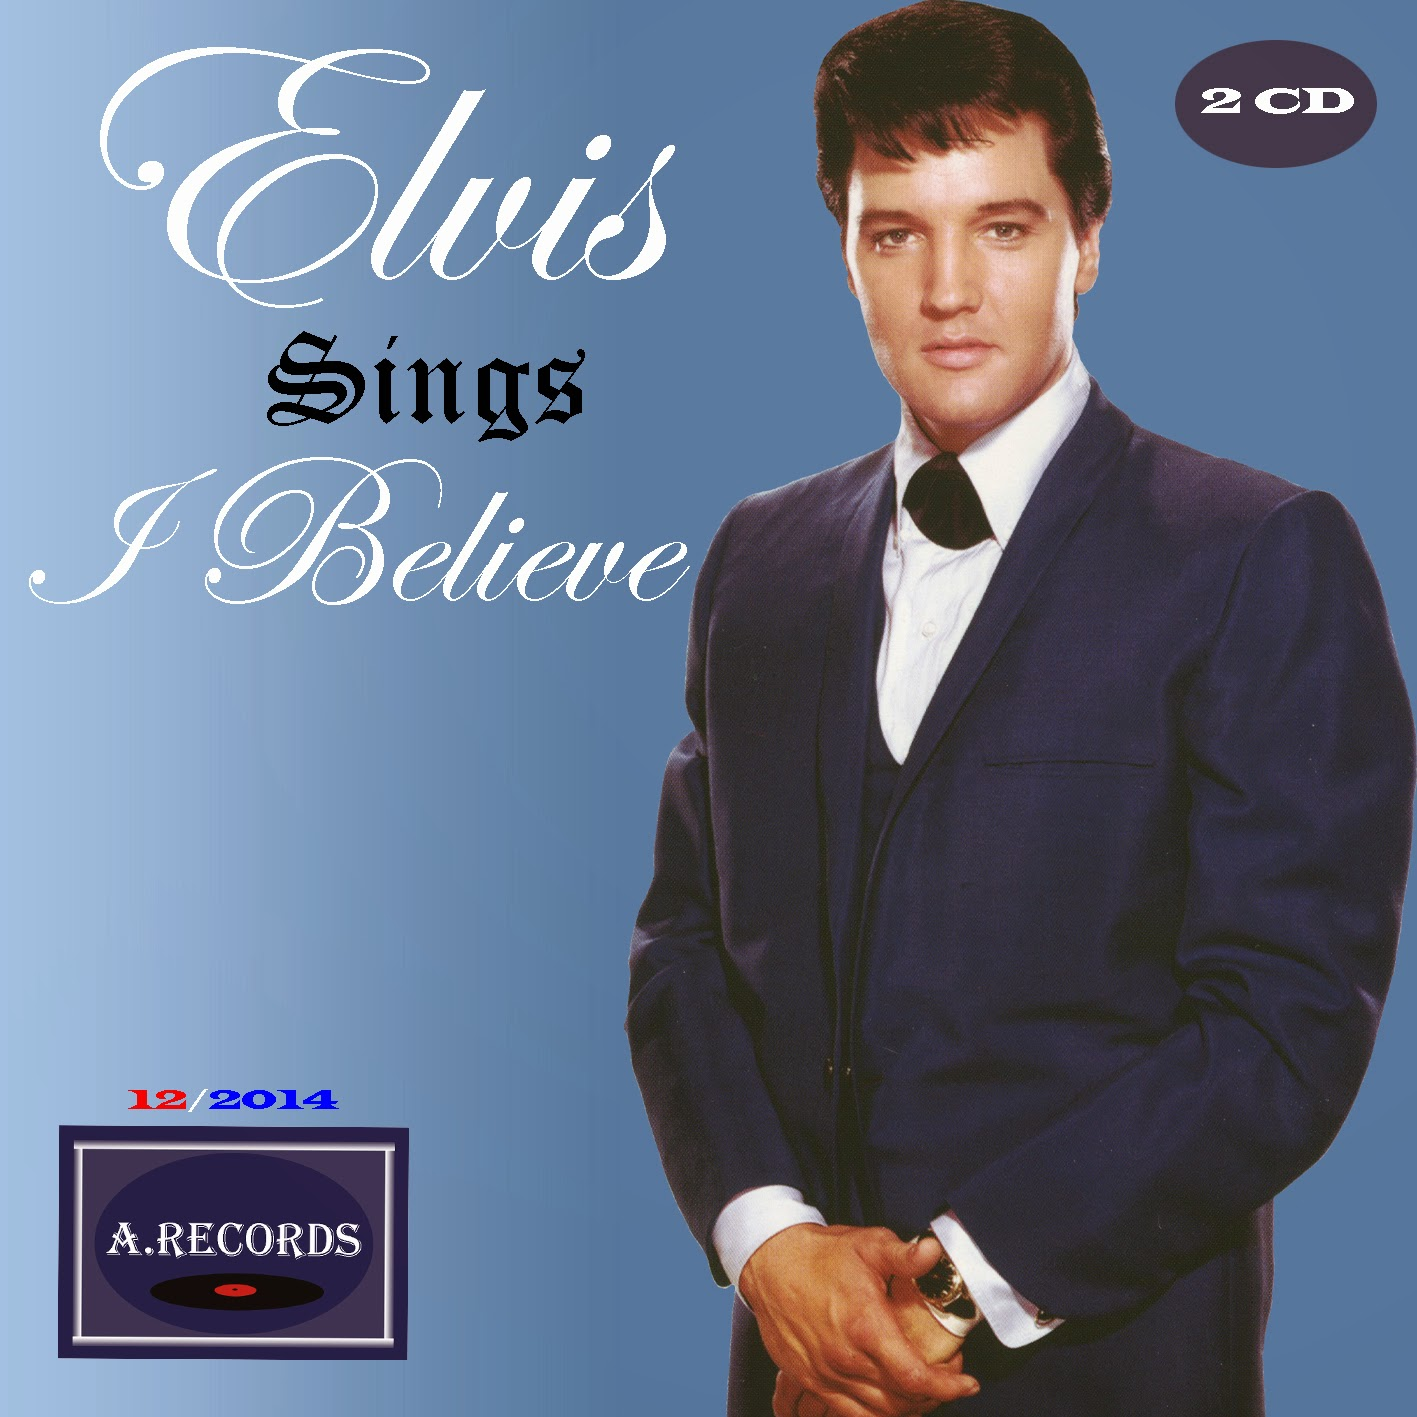 Elvis Sings I Believe (December 2014)